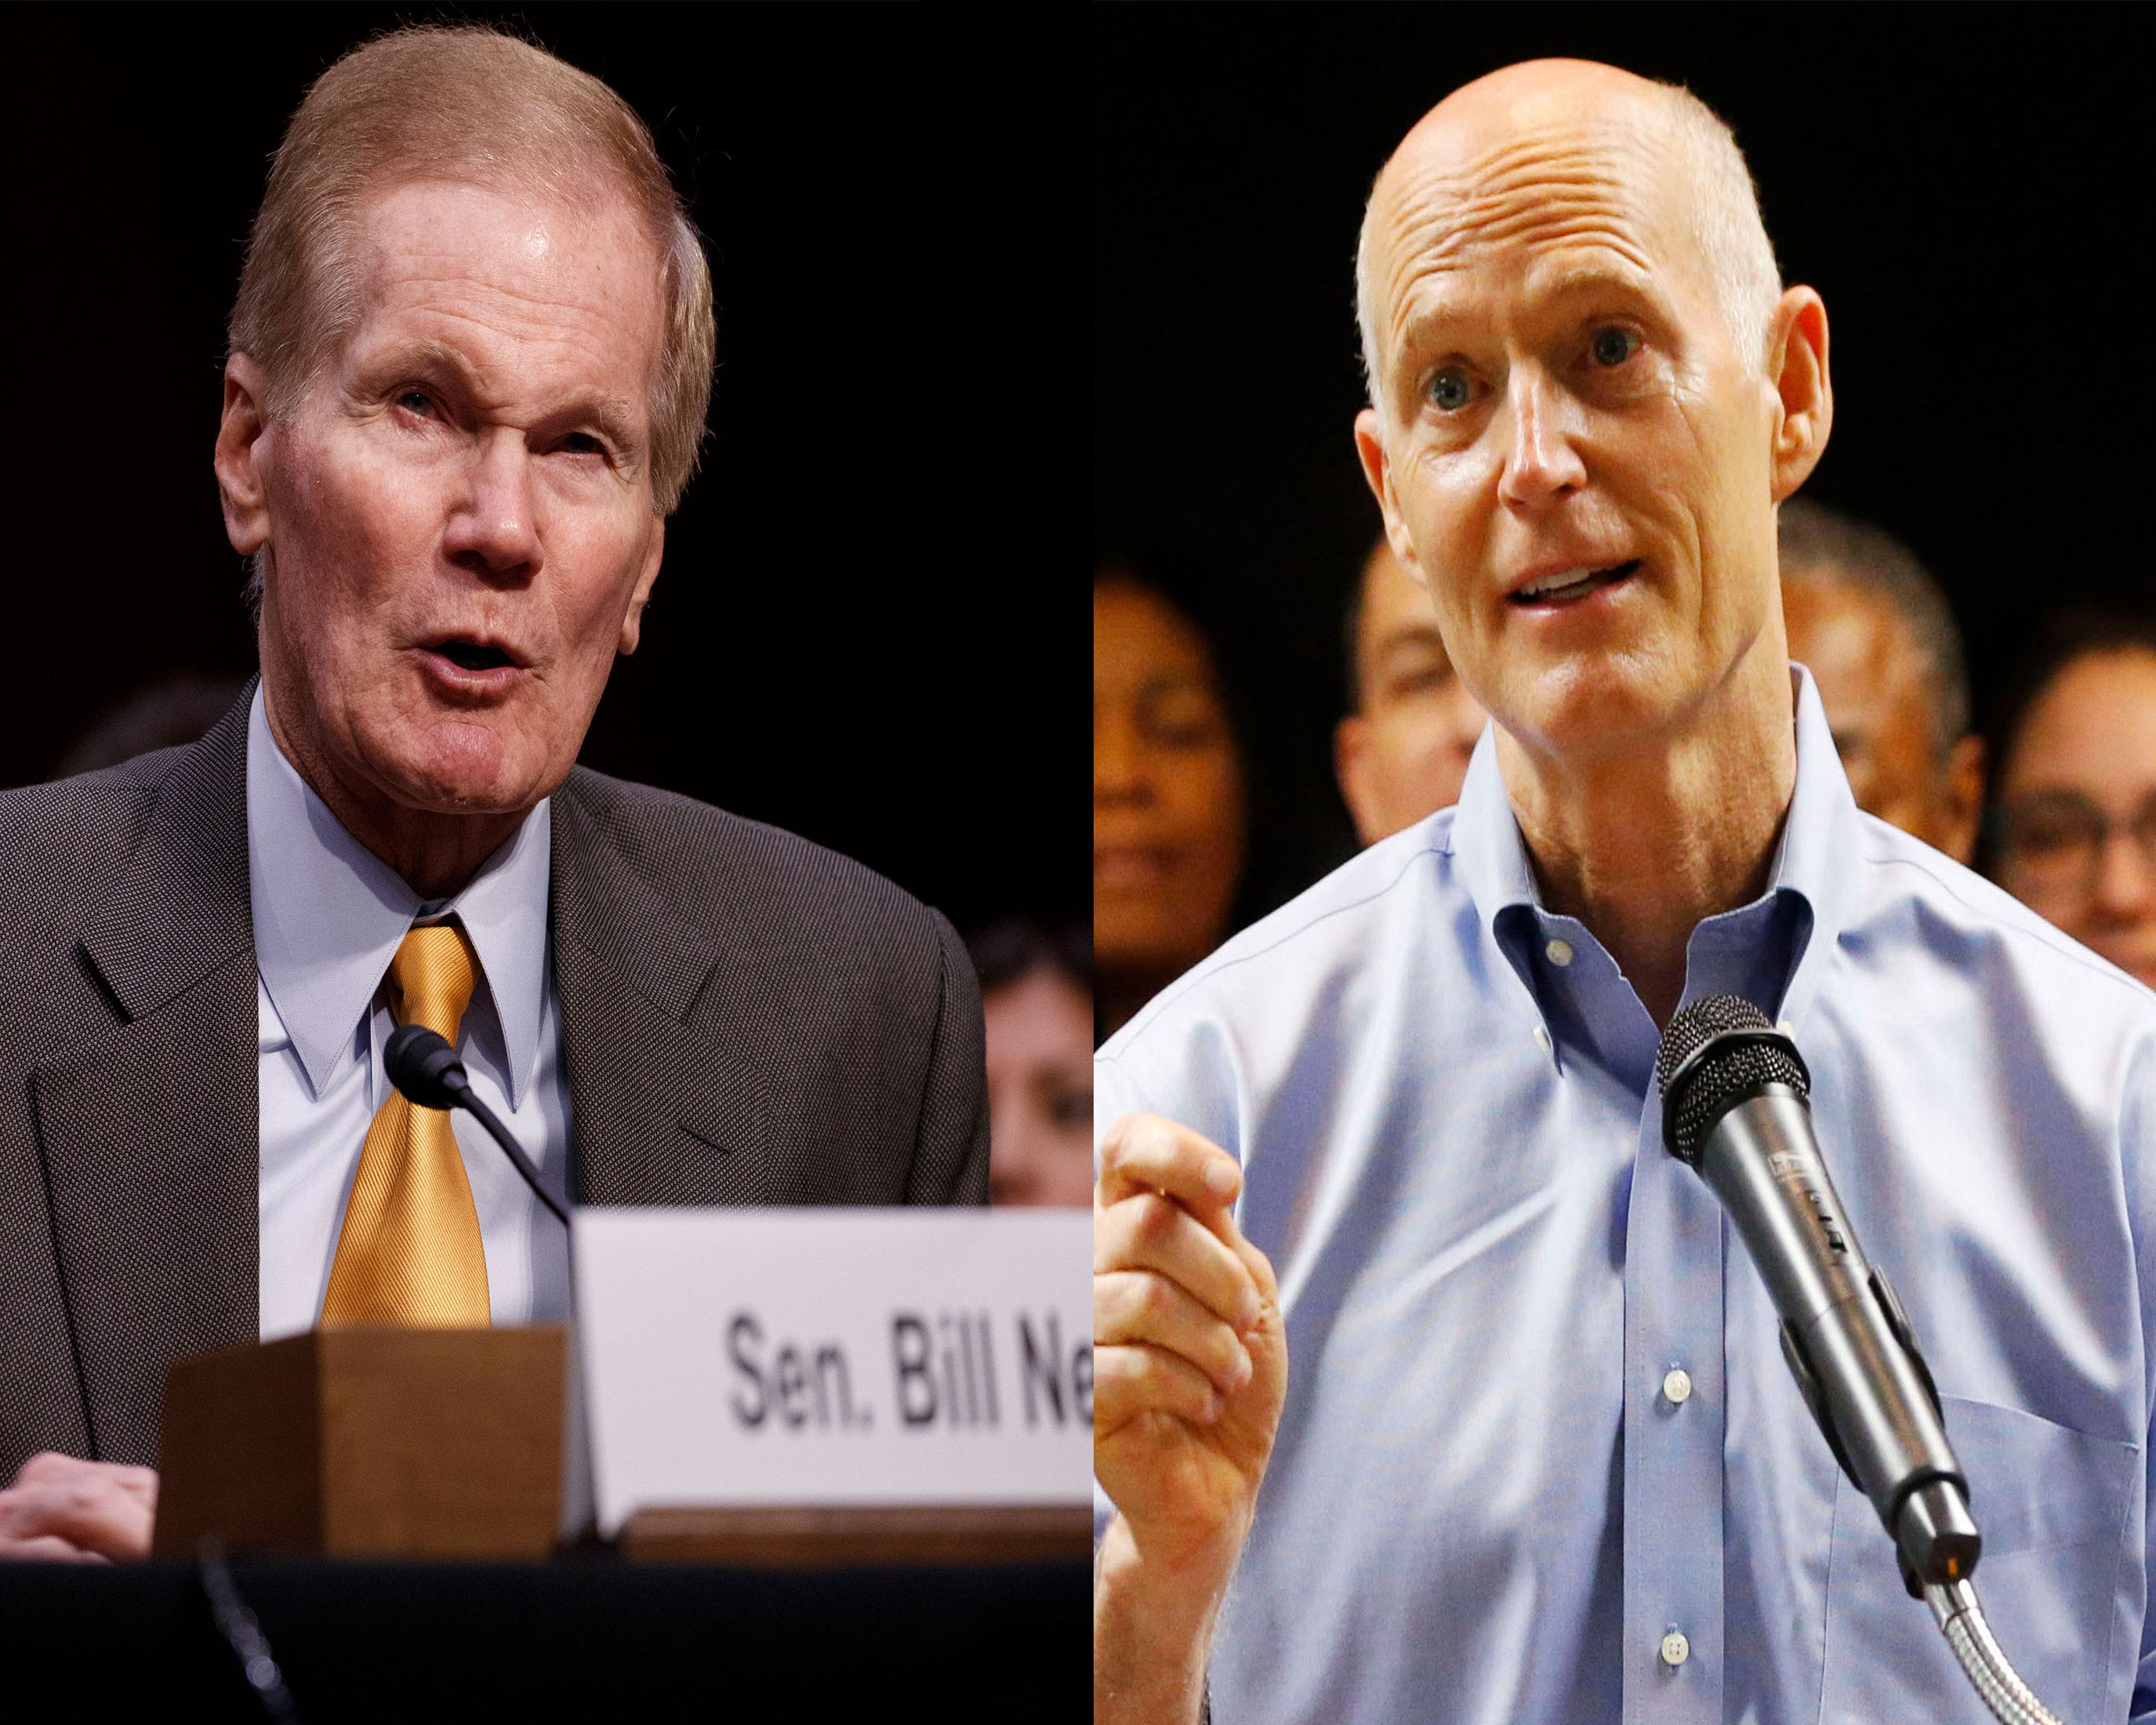 Hurricane Michael postpones debate between Florida Senate candidates Rick Scott, Bill Nelson